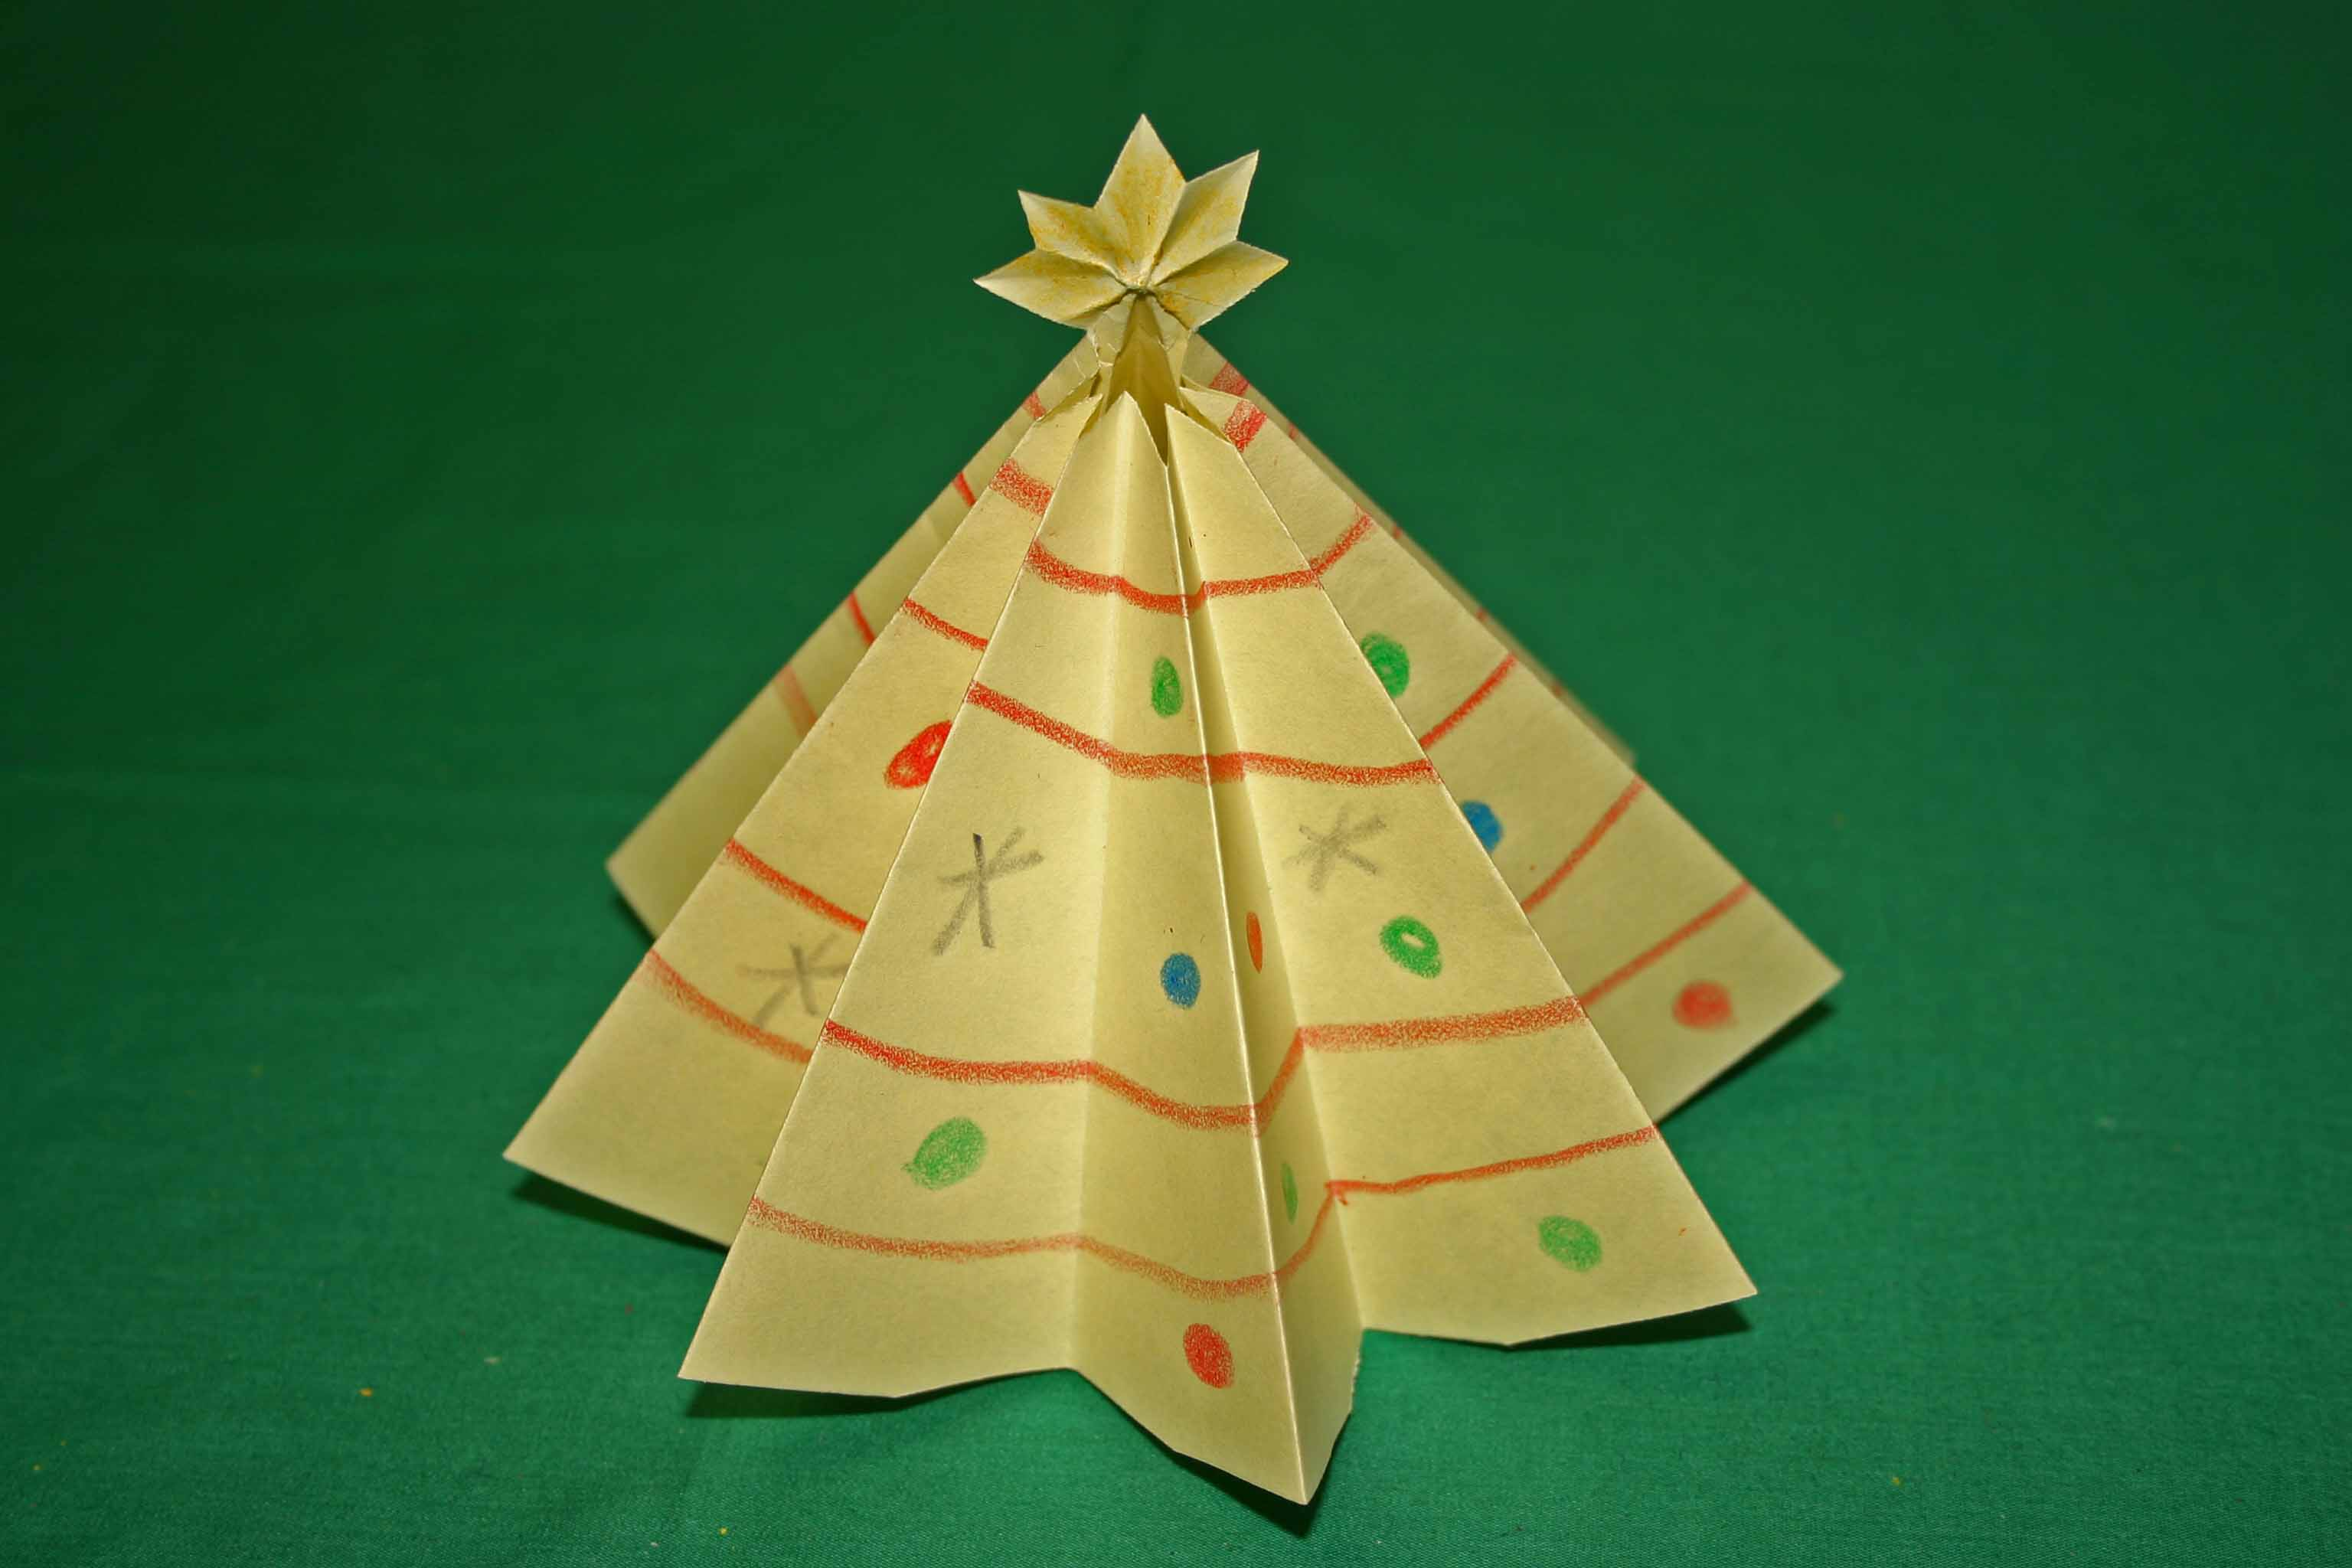 Paper Craft Ideas For Christmas Part - 18: Artsy Craftsy Holiday Cheer Fayetteville Public Library LrgrxnmP. Artsy  Craftsy Holiday Cheer Fayetteville Public Library. Easy Christmas Craft ...